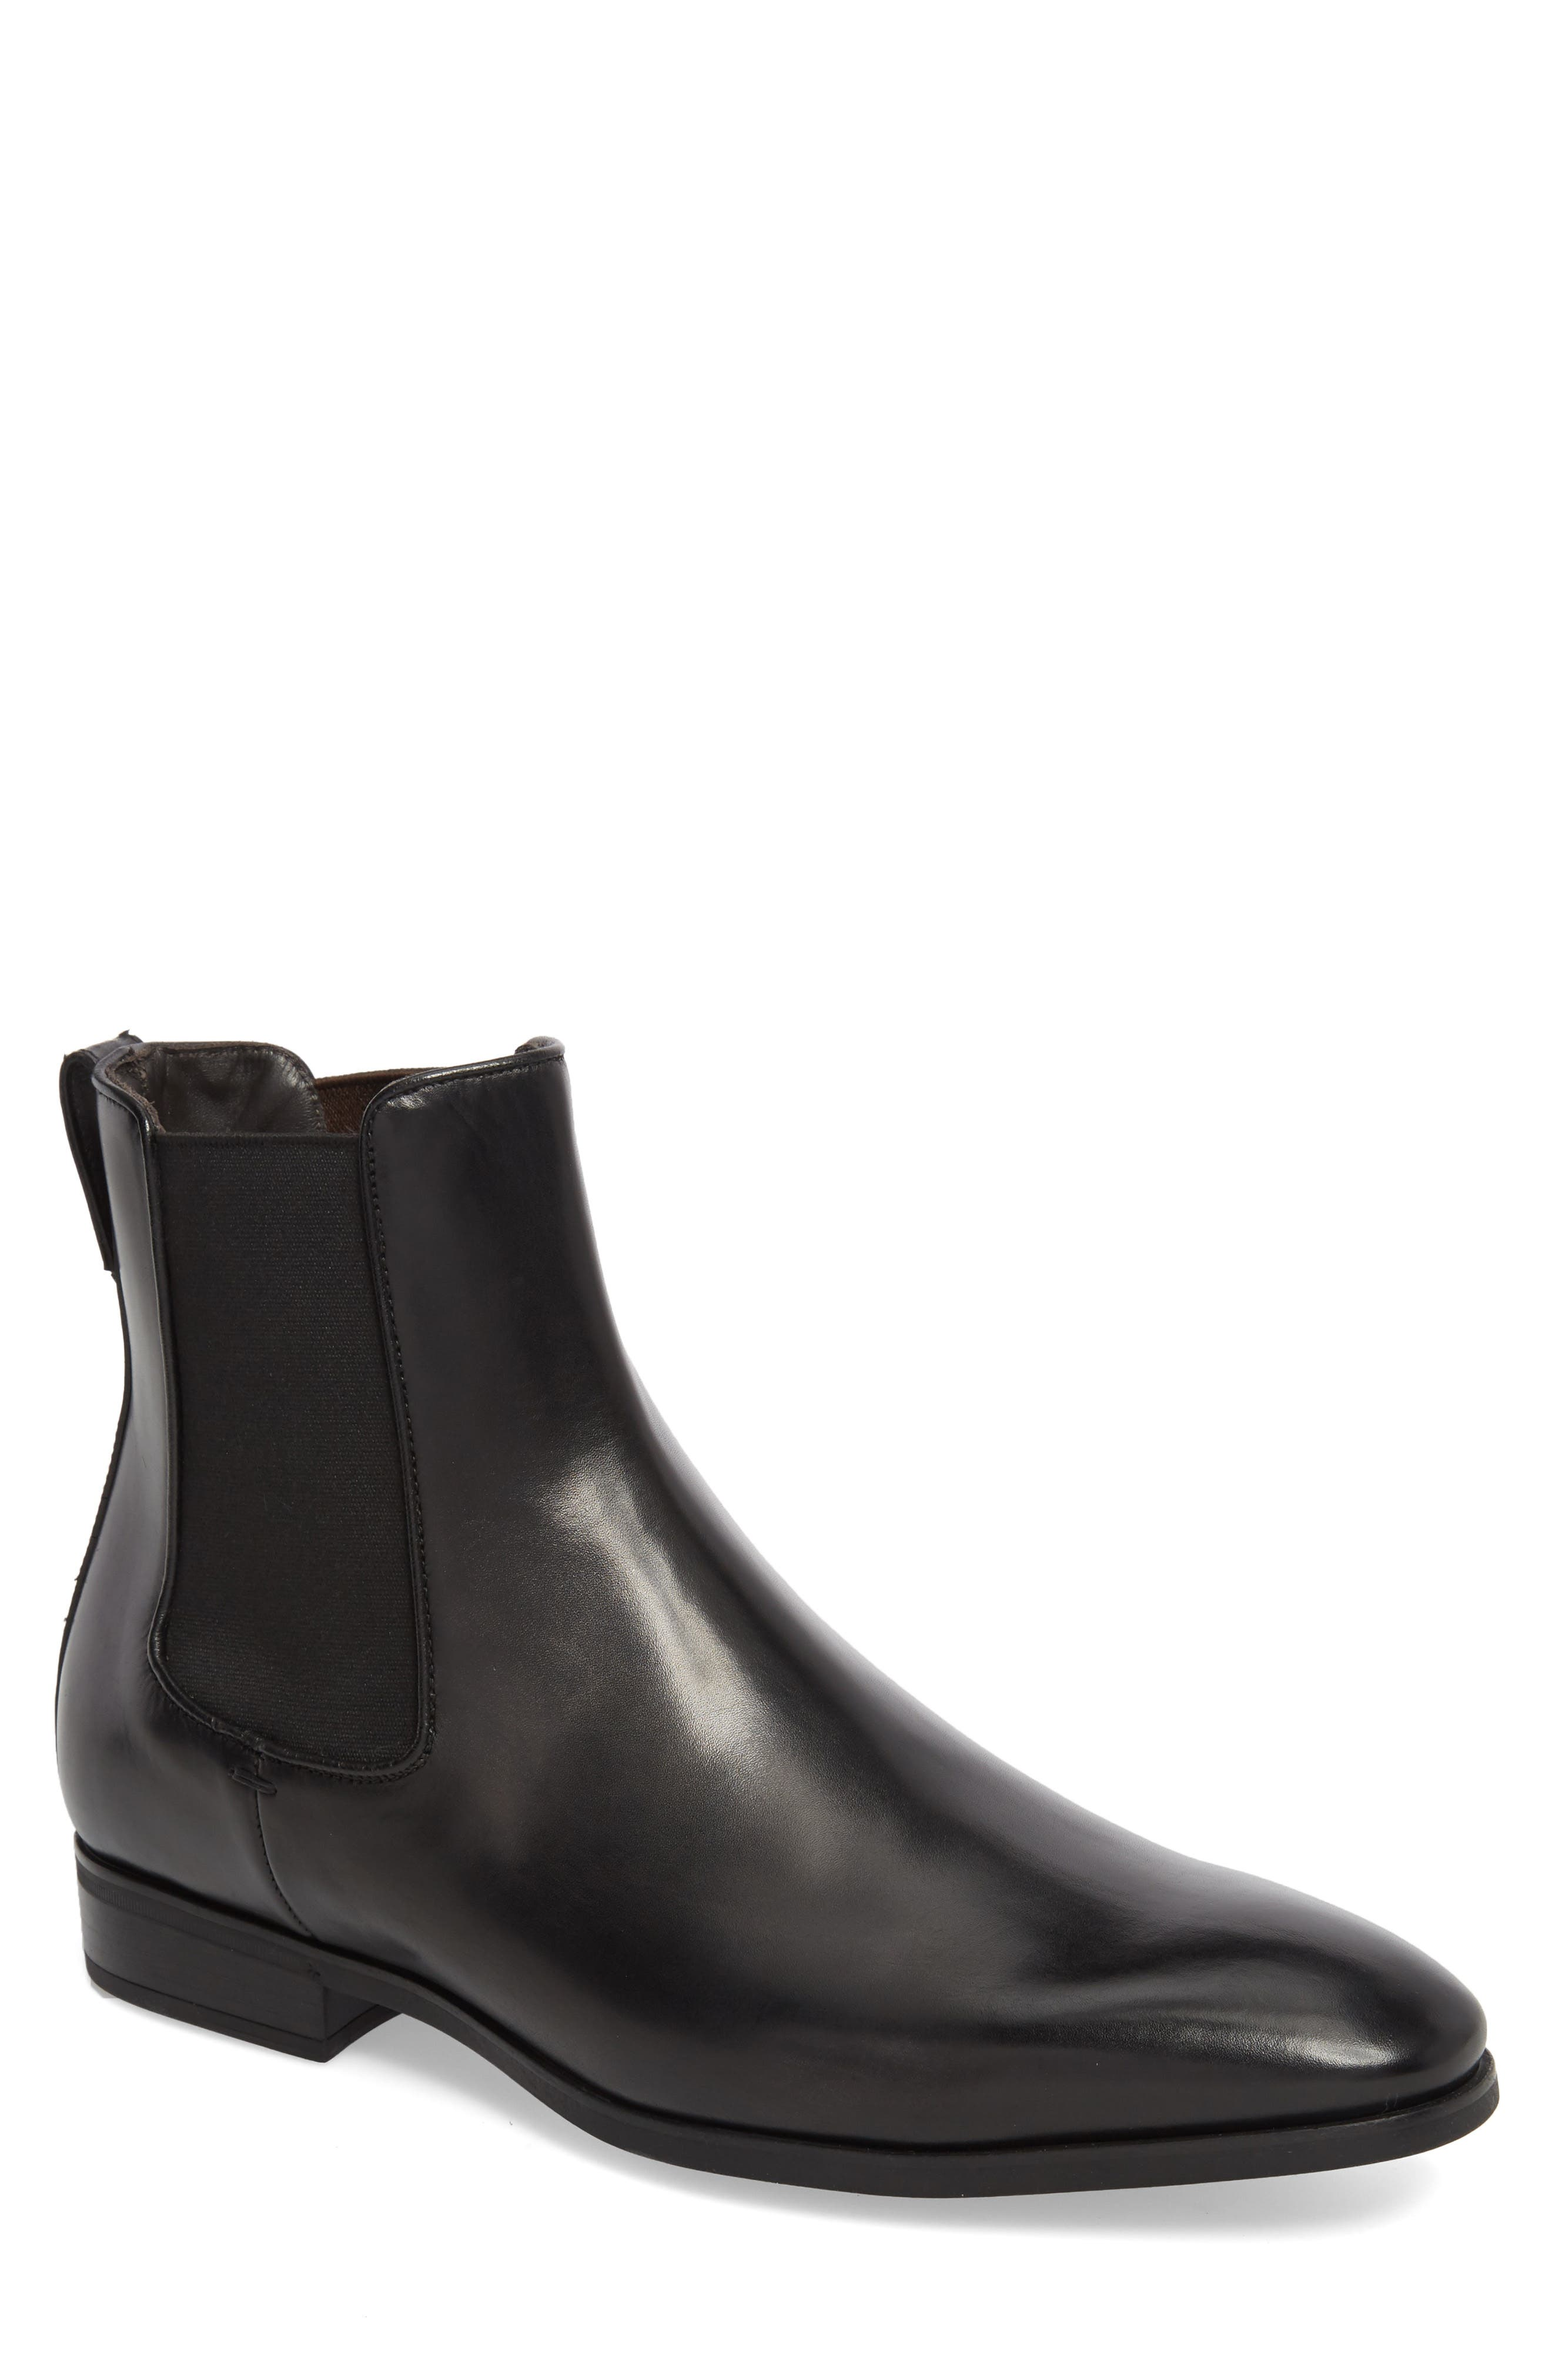 TO BOOT NEW YORK, Aldrich Mid Chelsea Boot, Main thumbnail 1, color, BLACK/ BLACK LEATHER